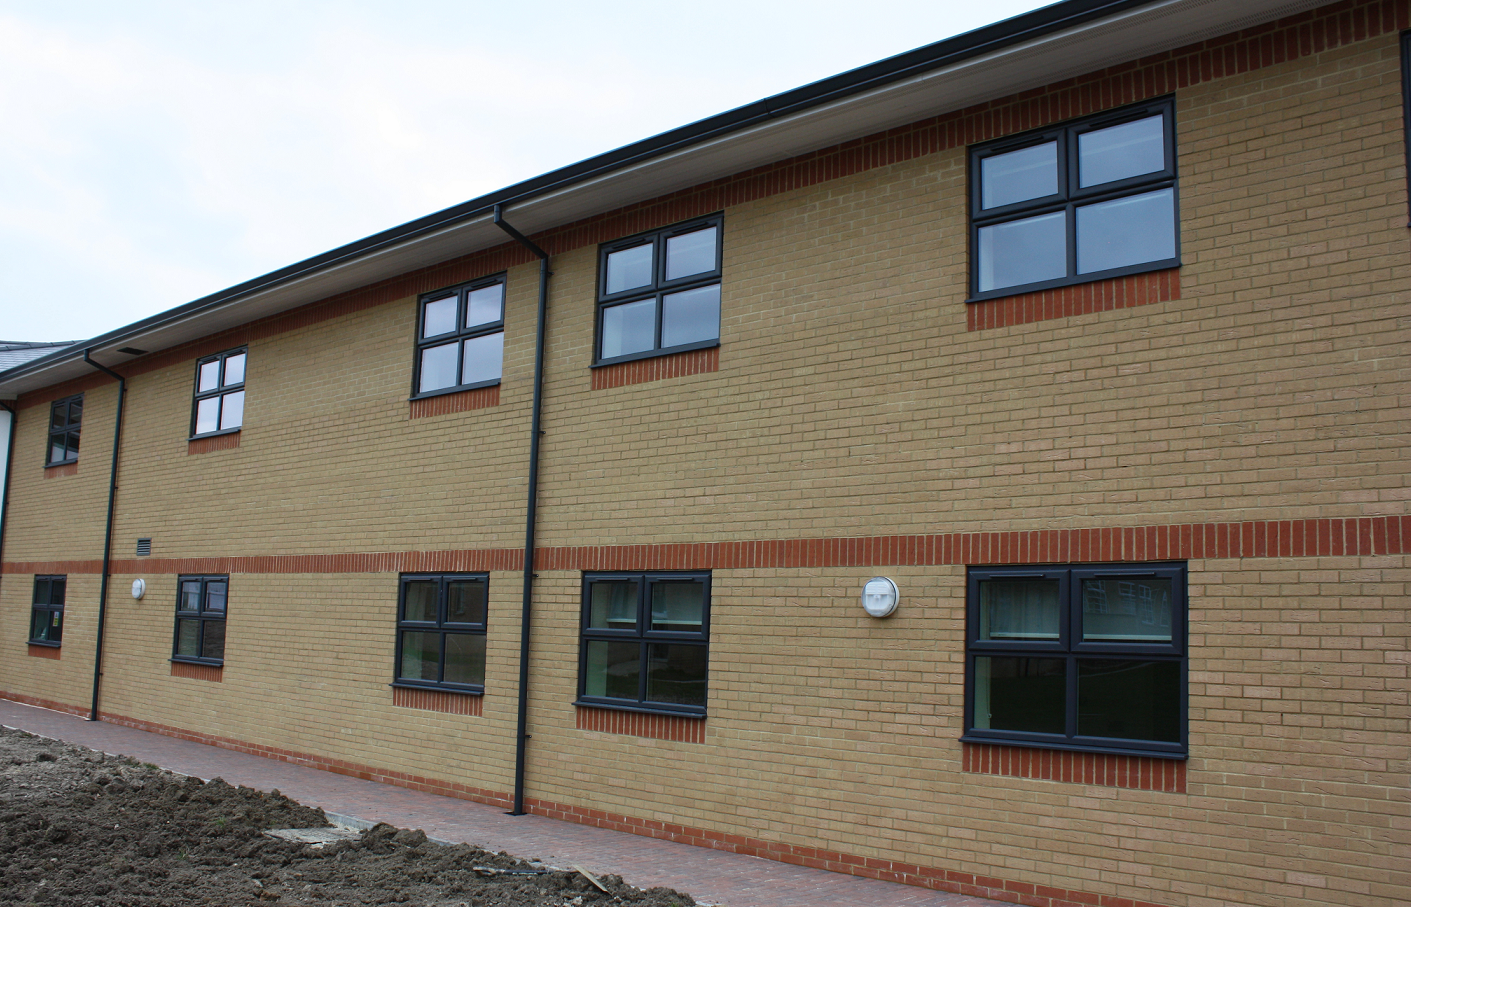 FastframeUk completes complex new build installation in Newbury